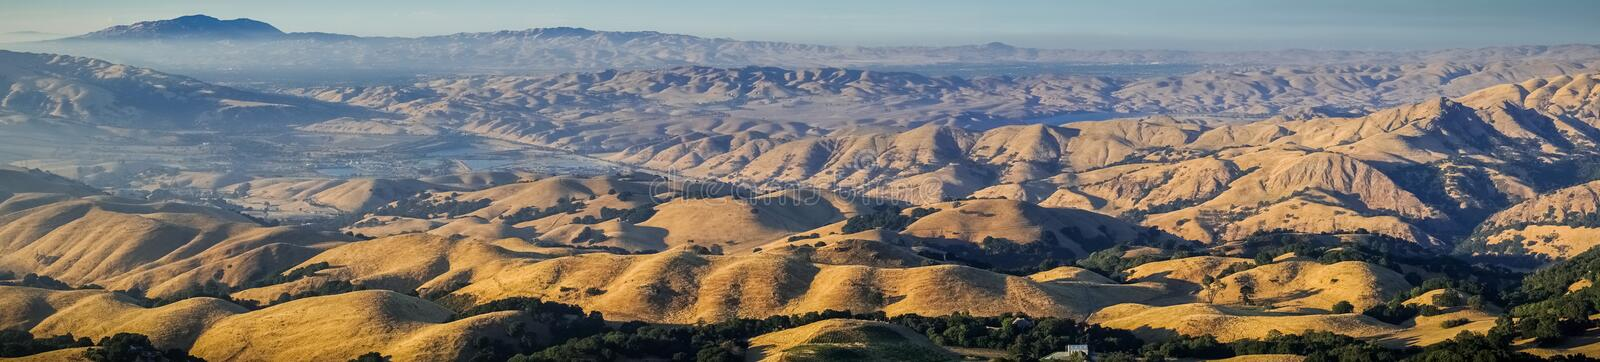 Panoramic view towards Mount Diablo at sunset from the summit of Mission Peak royalty free stock photo